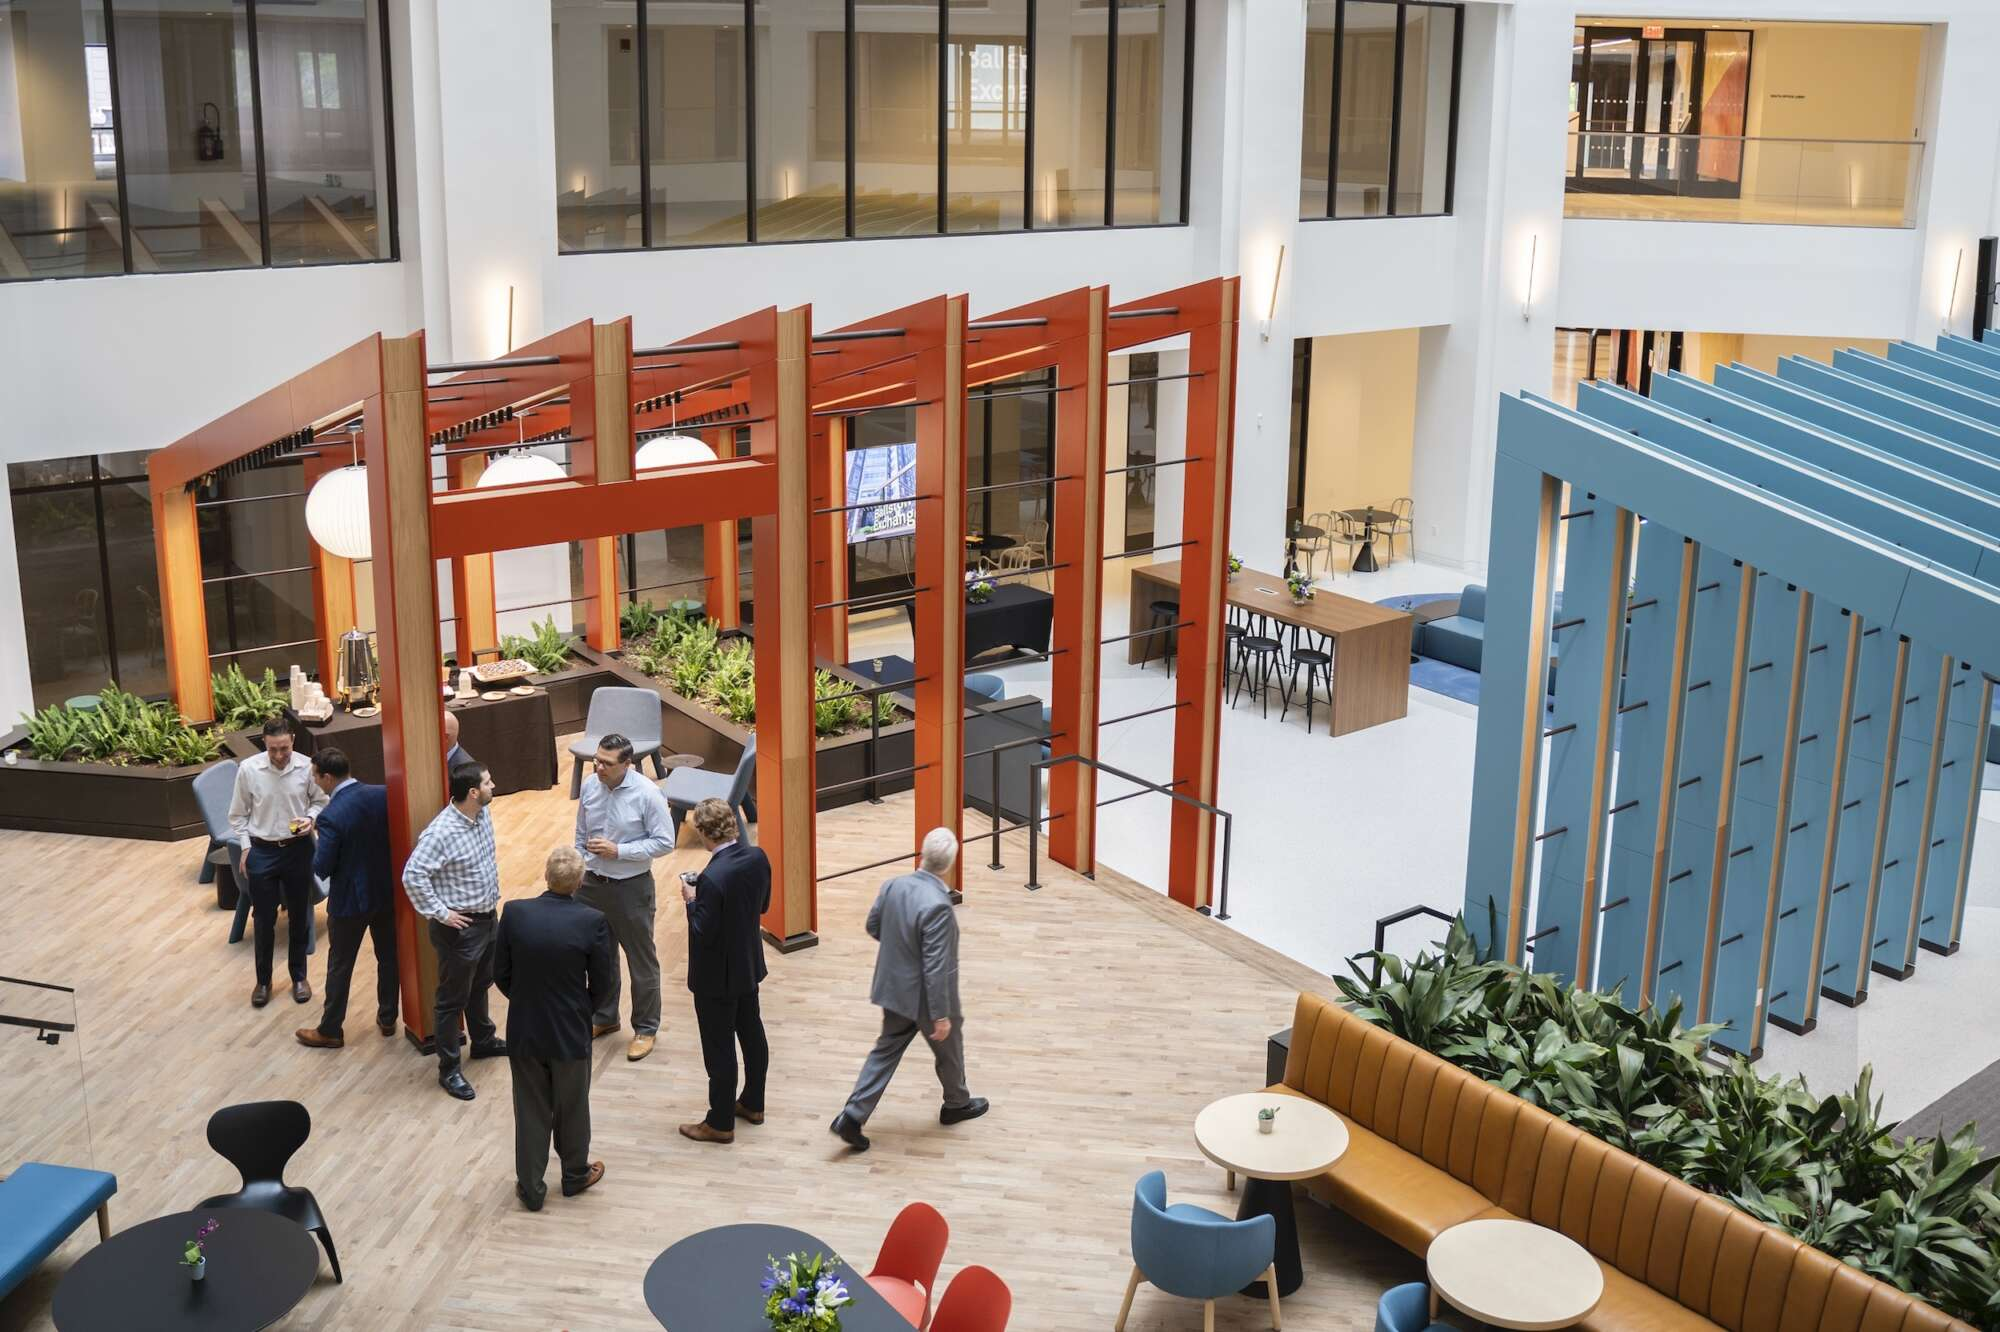 Ballston Exchange interior atrium with visitors congregating